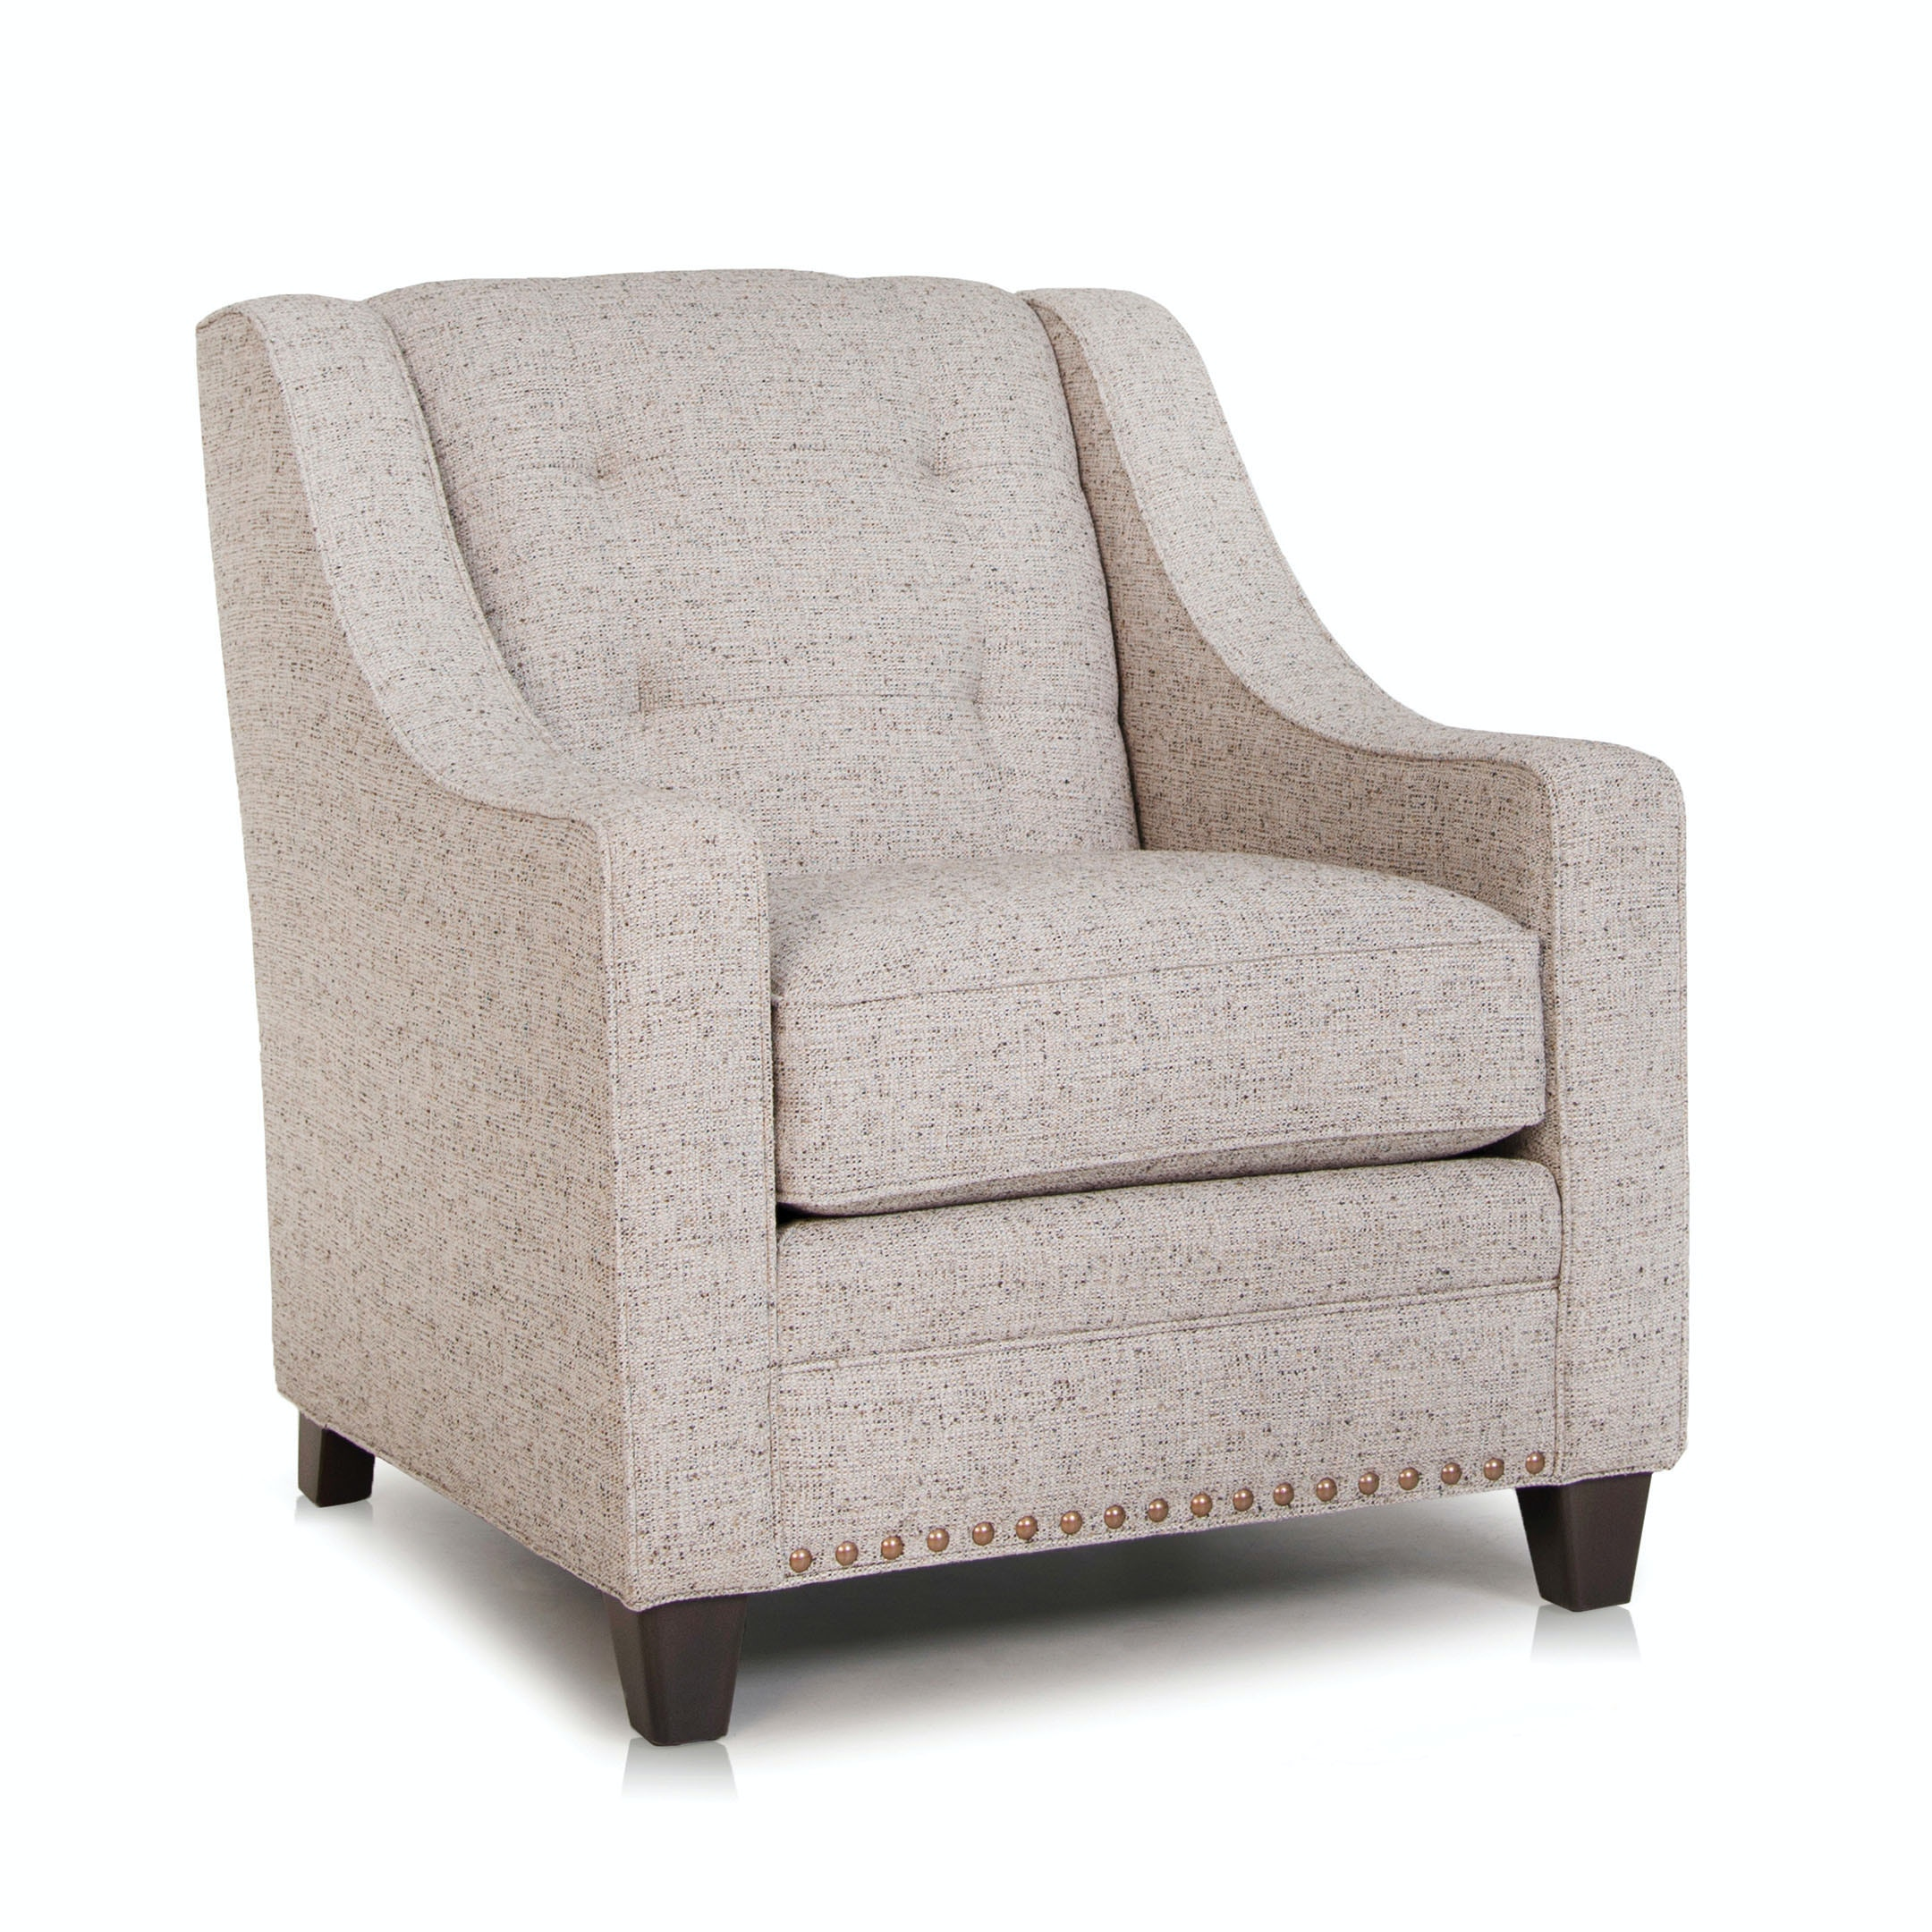 Smith Brothers Chair 203 30